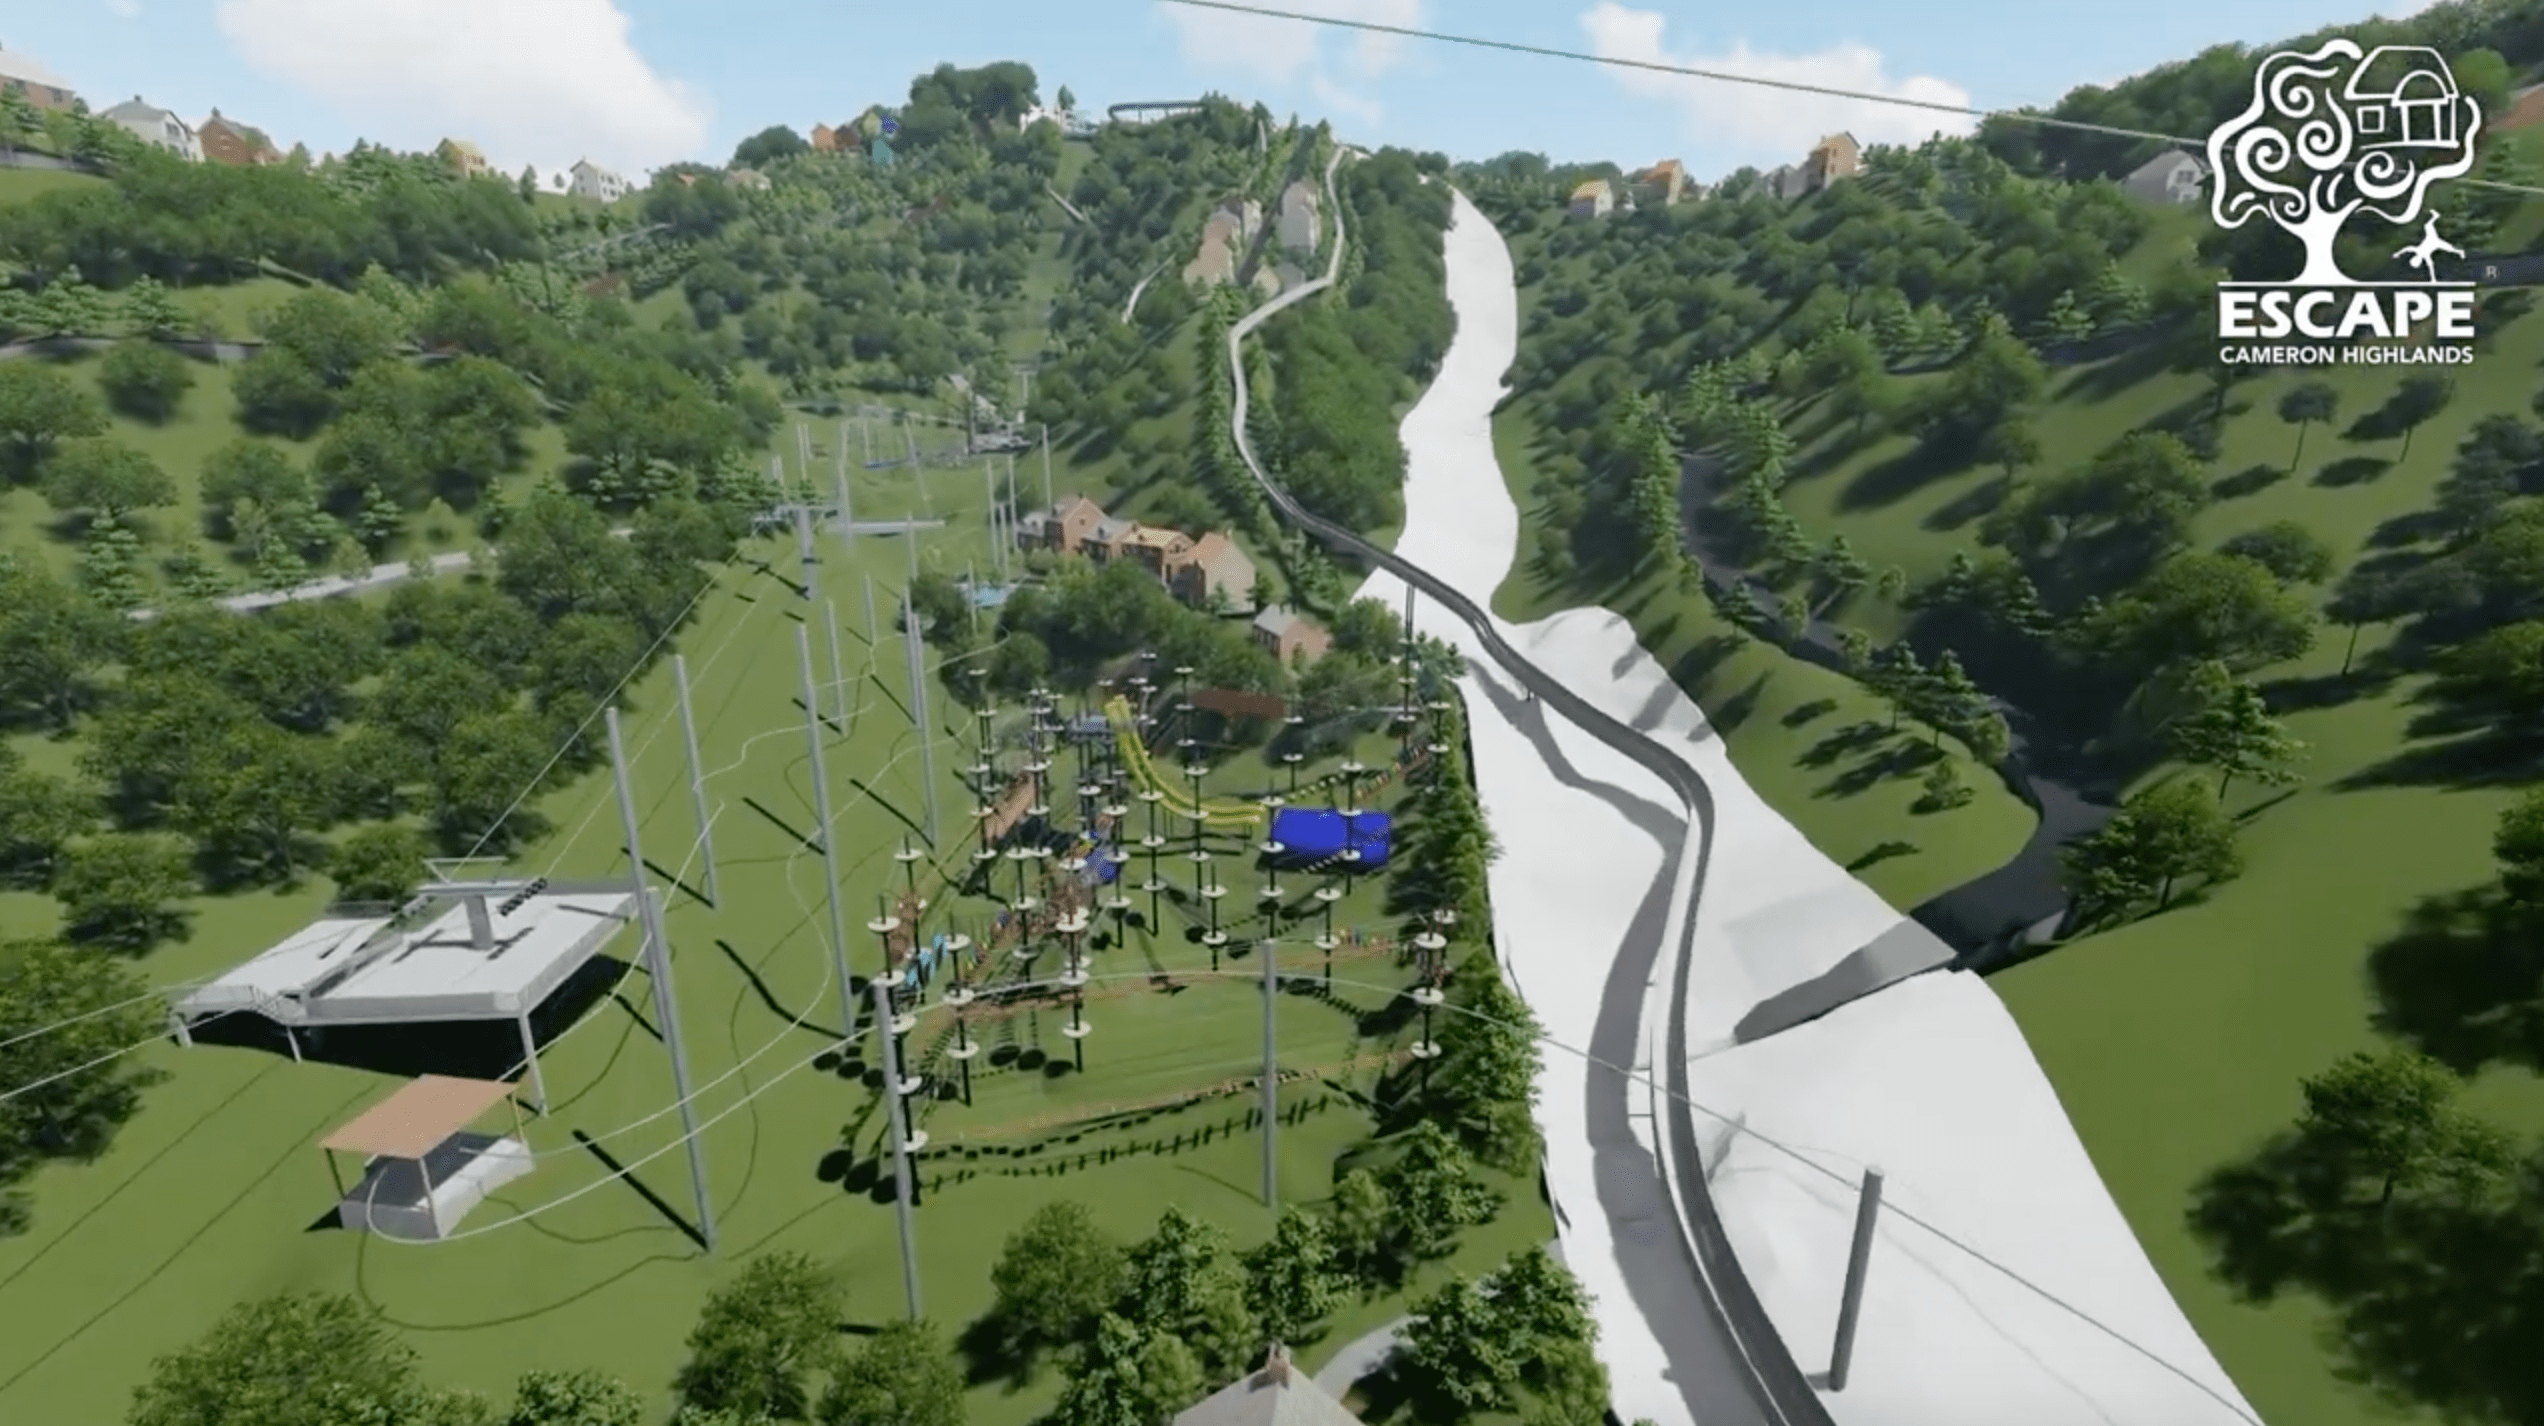 Escape Cameron Highlands to open in 2023 - obstacle courses